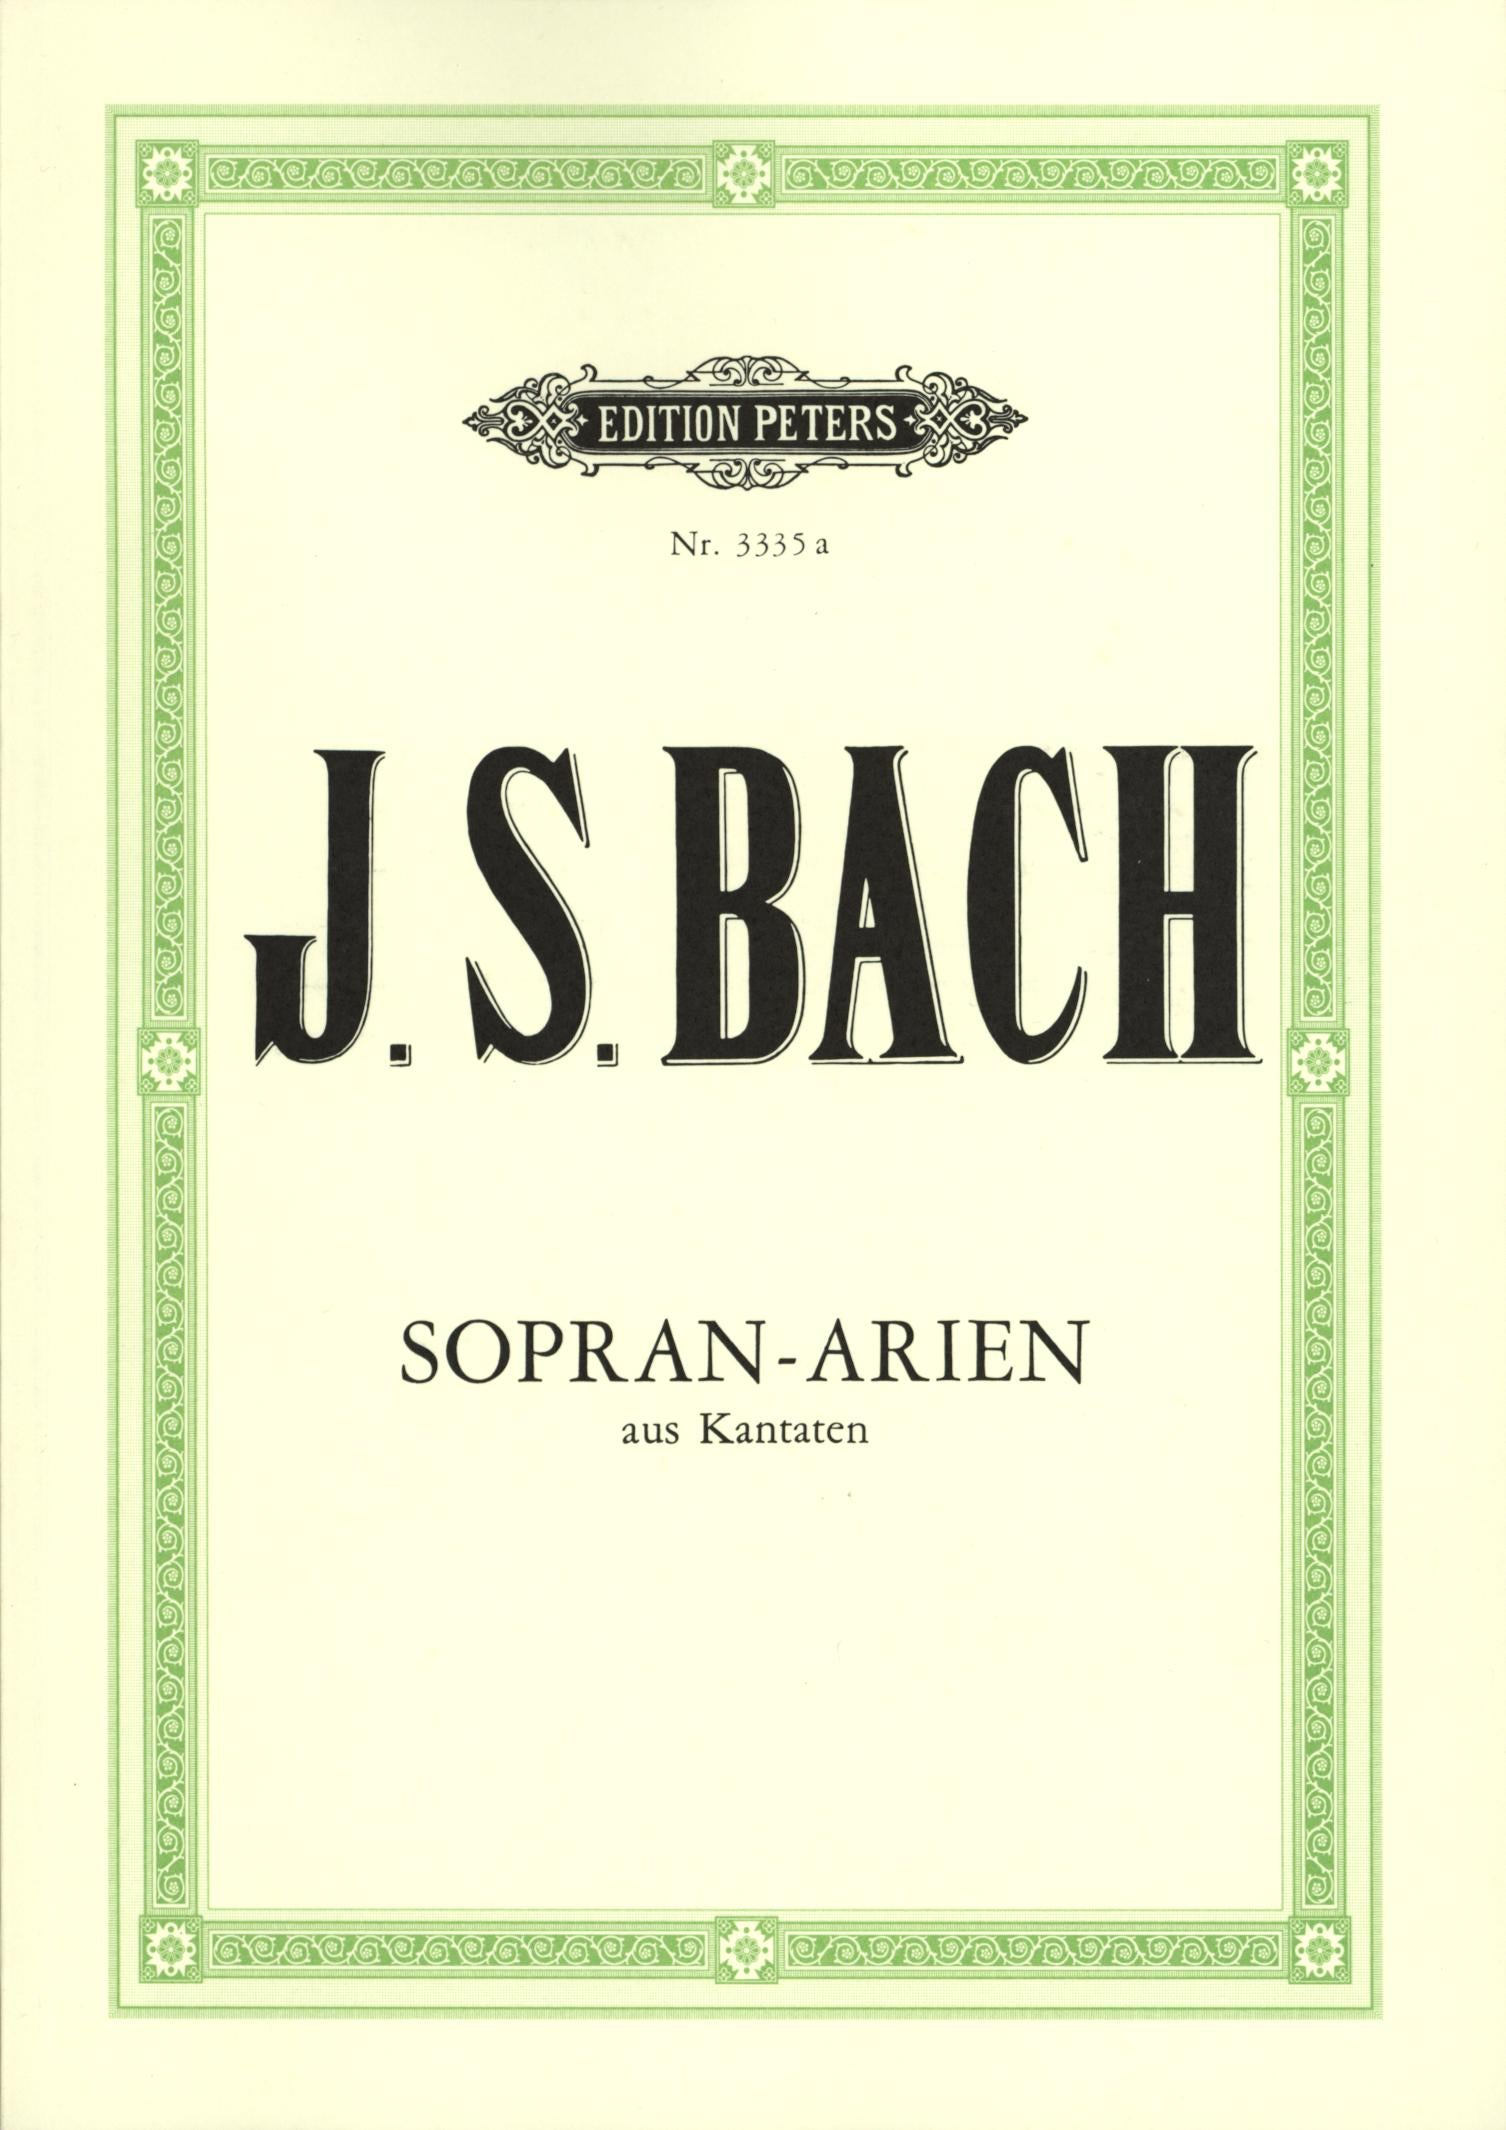 Bach: Soprano Arias from Cantatas